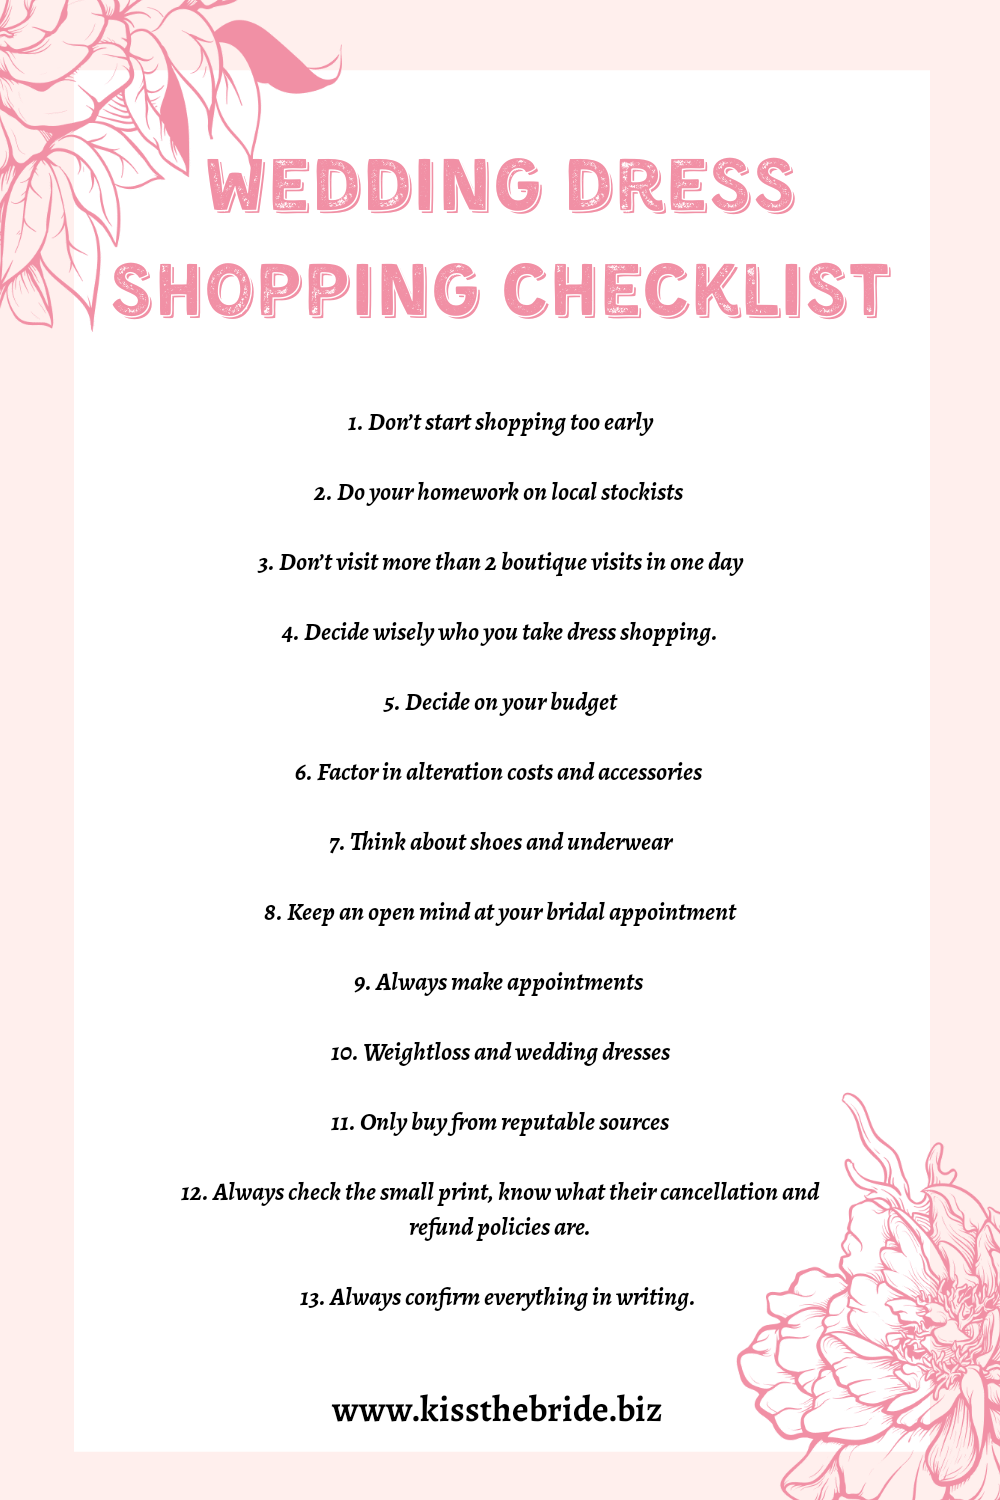 Wedding dress shopping checklist